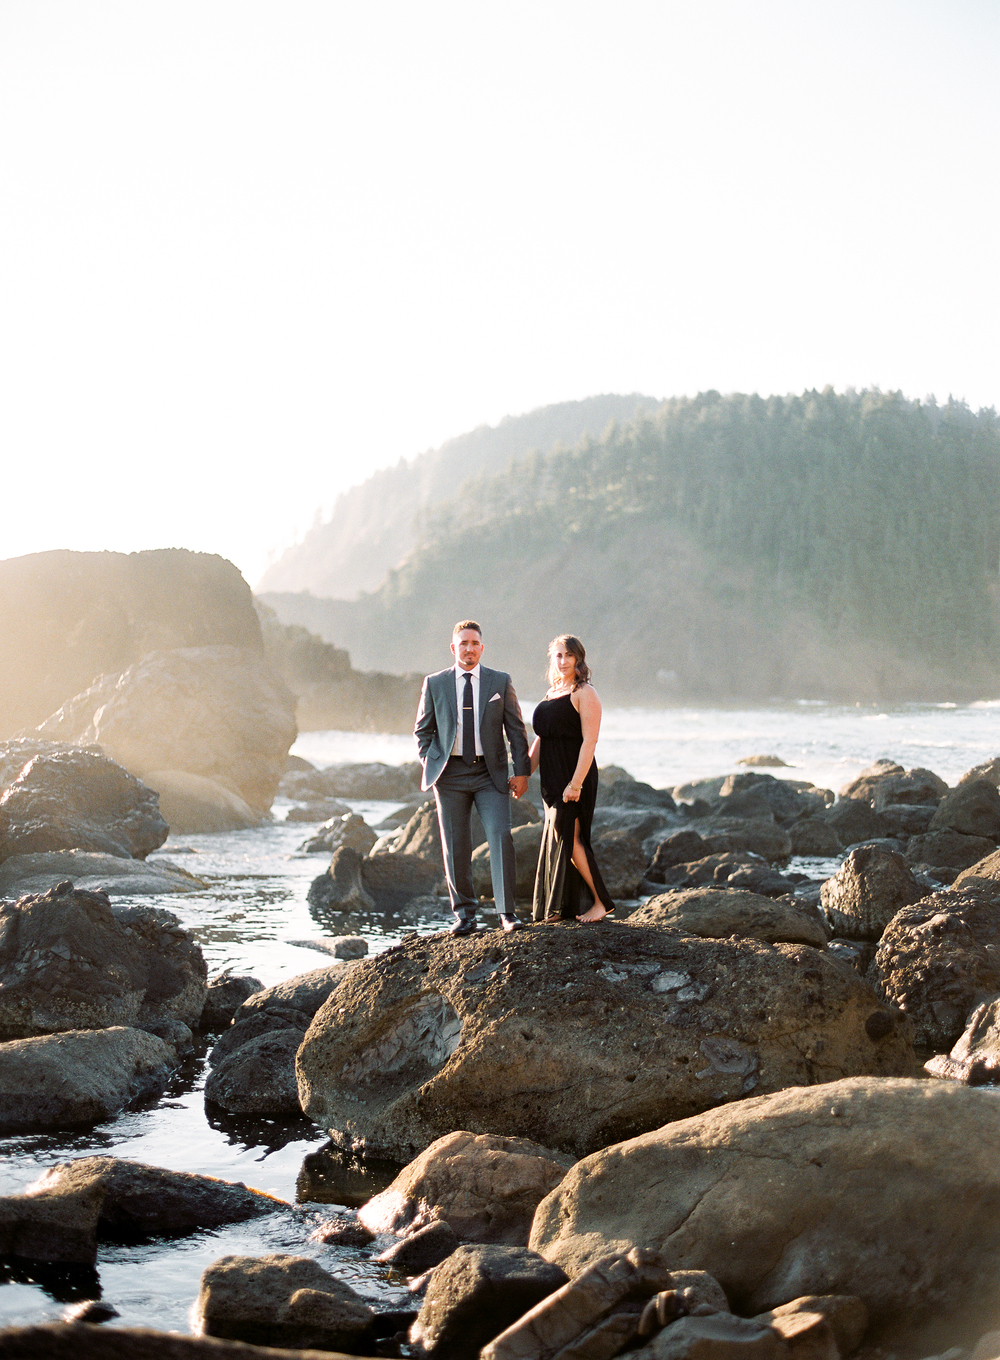 indian-beach-oregon-engagement-34.jpg